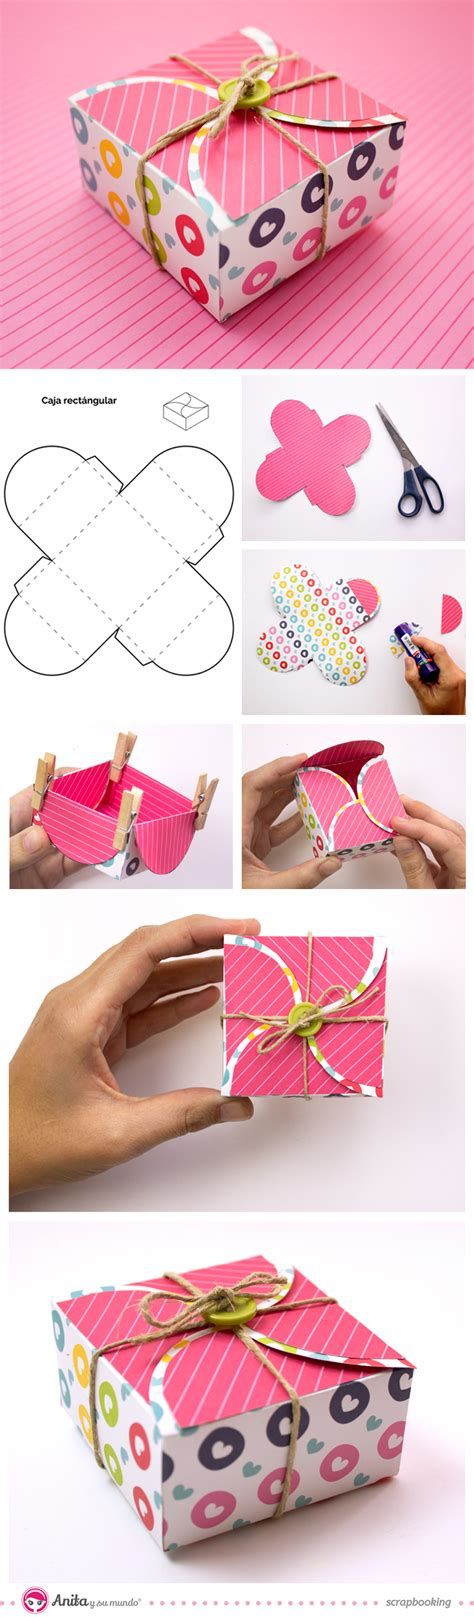 Self Closing Origami Box - square gift box with self closing diy crafts tips